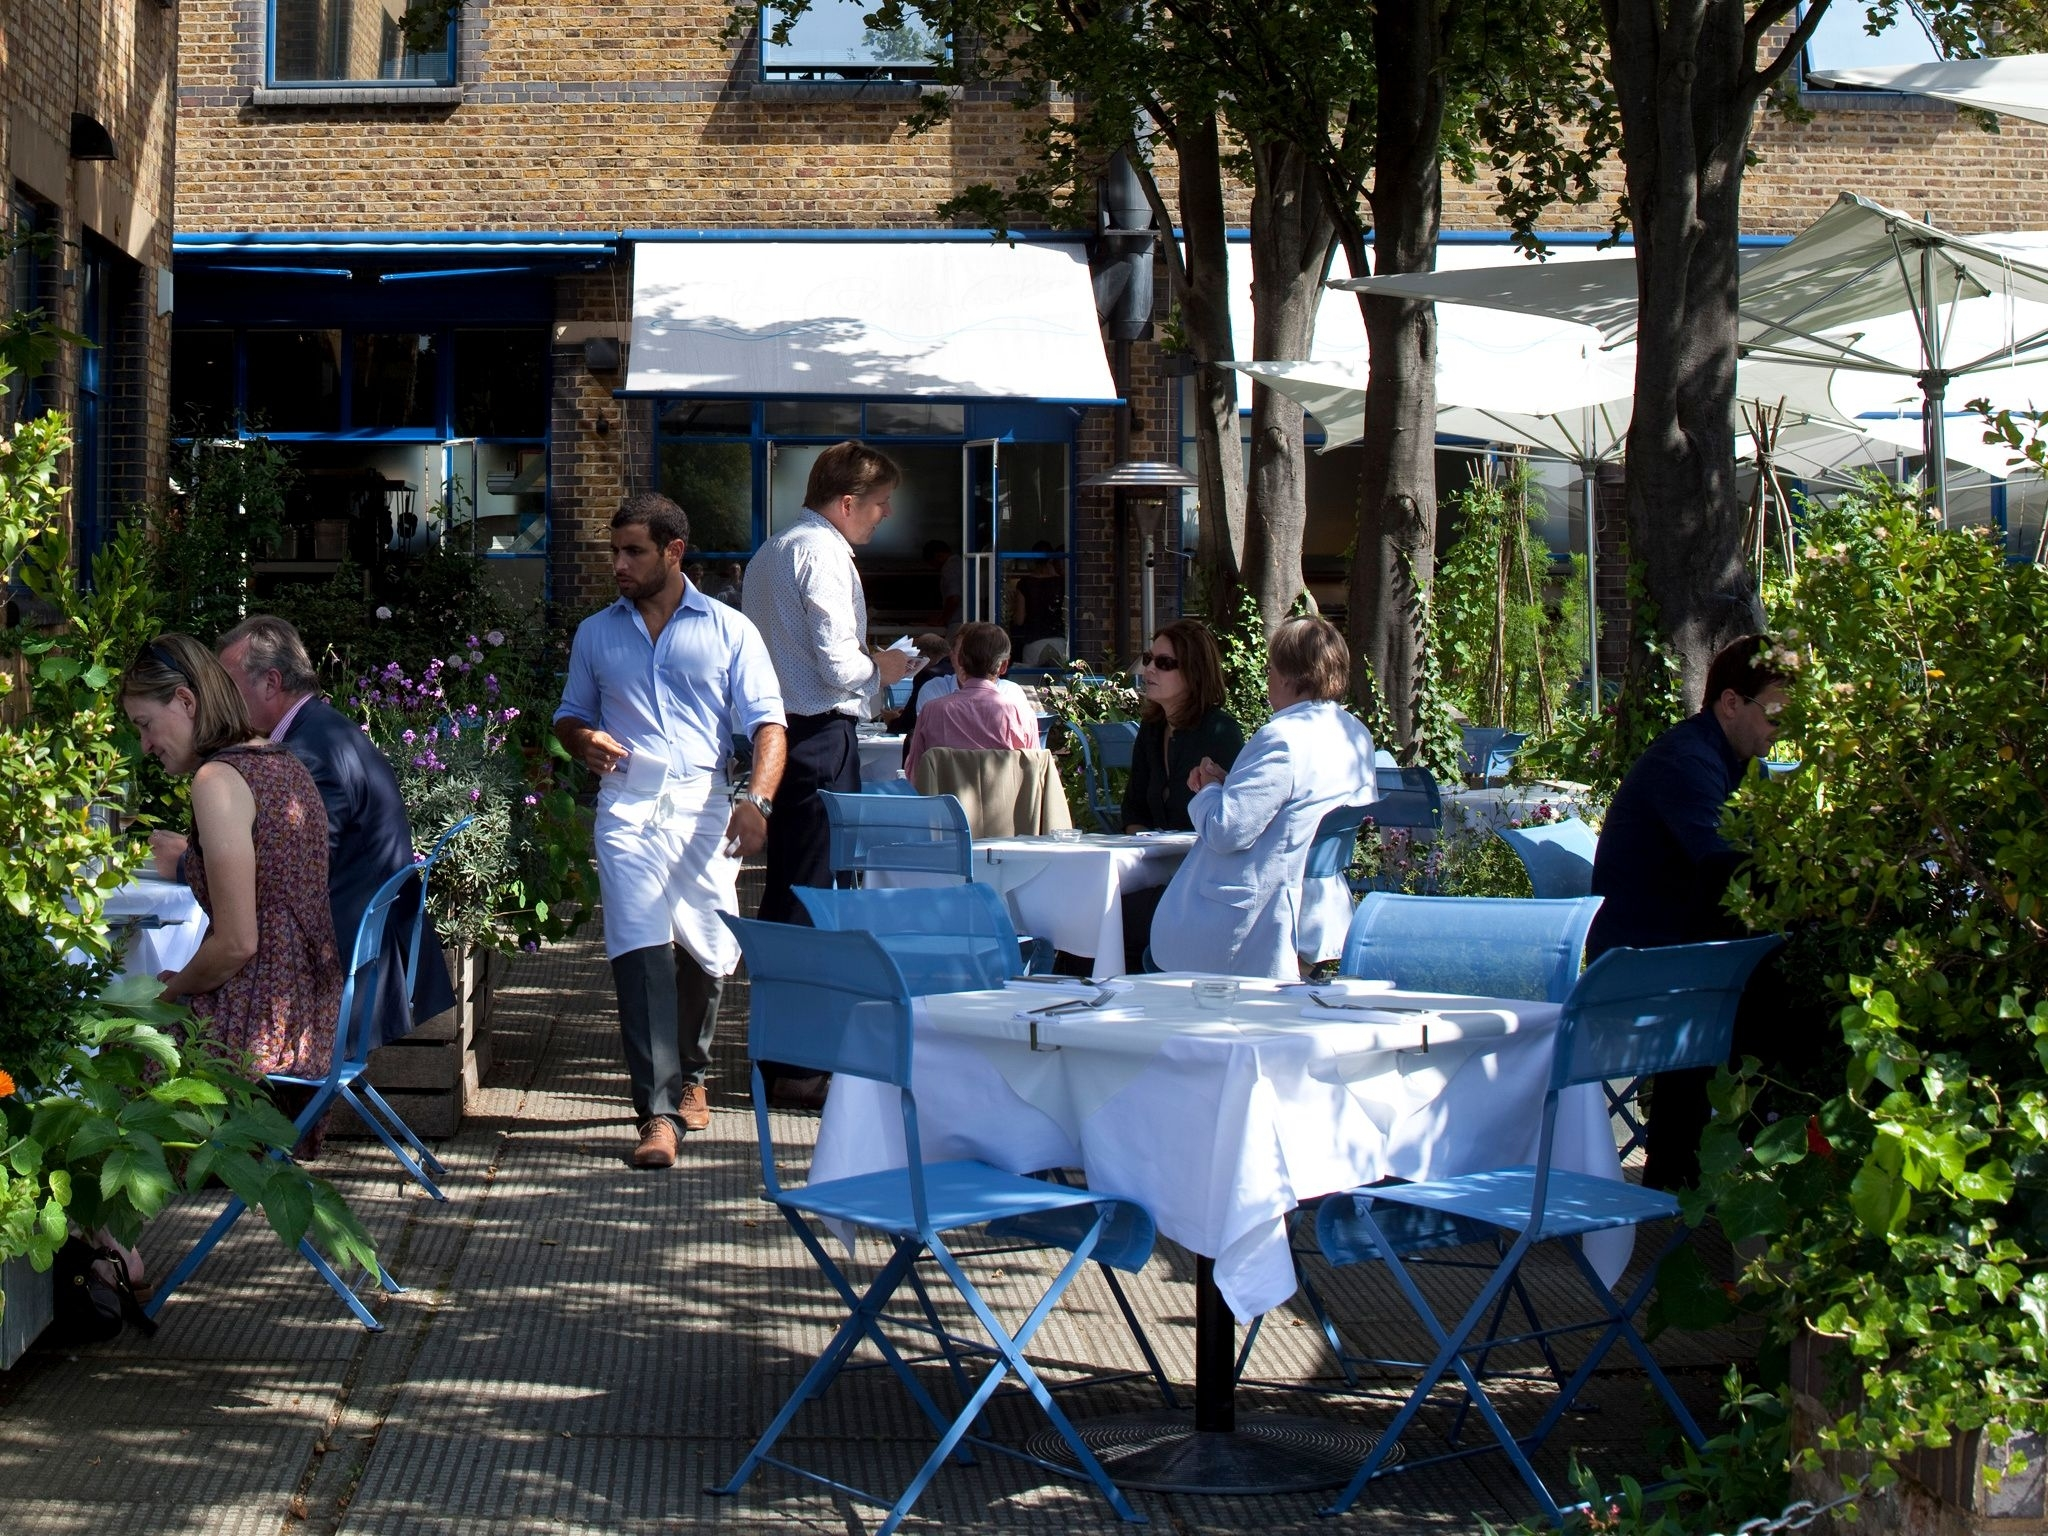 Backyard Garden Lunch Special Best Of 42 Ace Places To Eat Alfresco within Backyard Garden Lunch Special